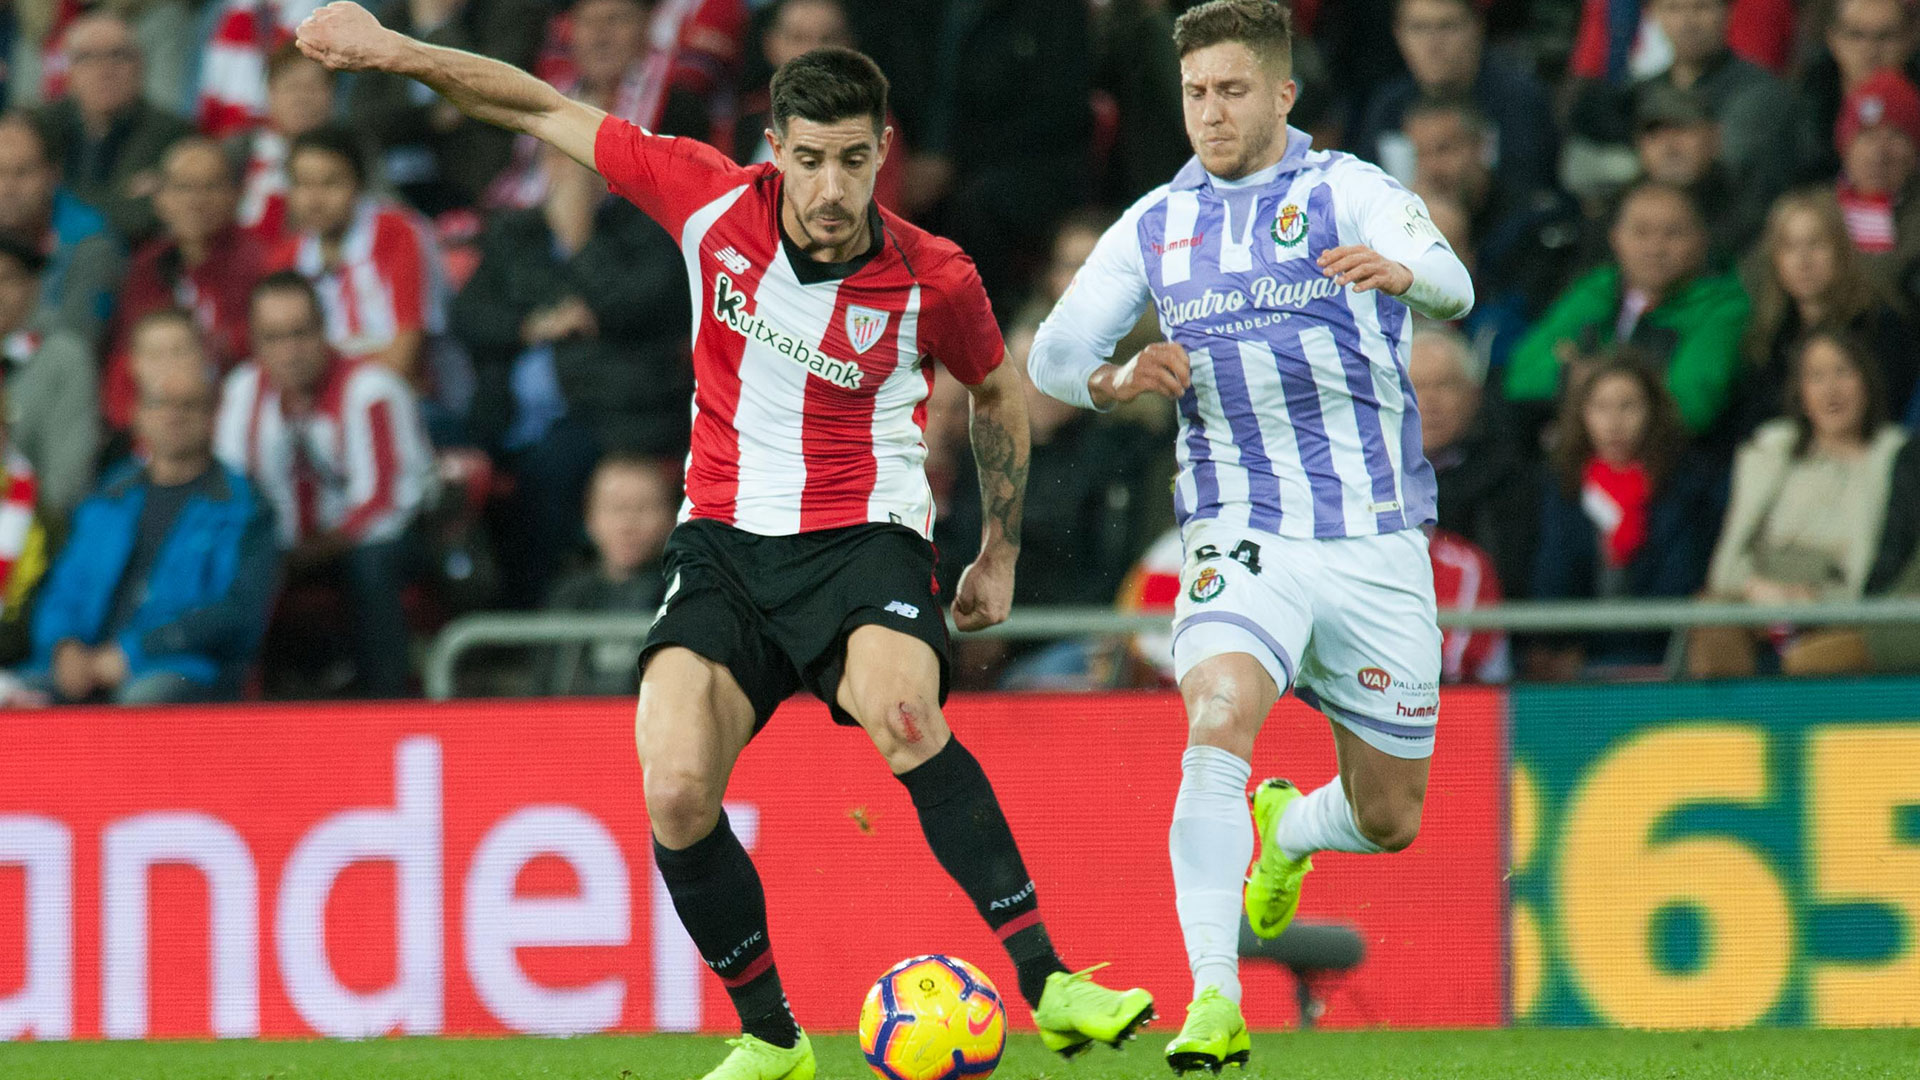 Real Valladolid-Athletic Club, fecha y hora